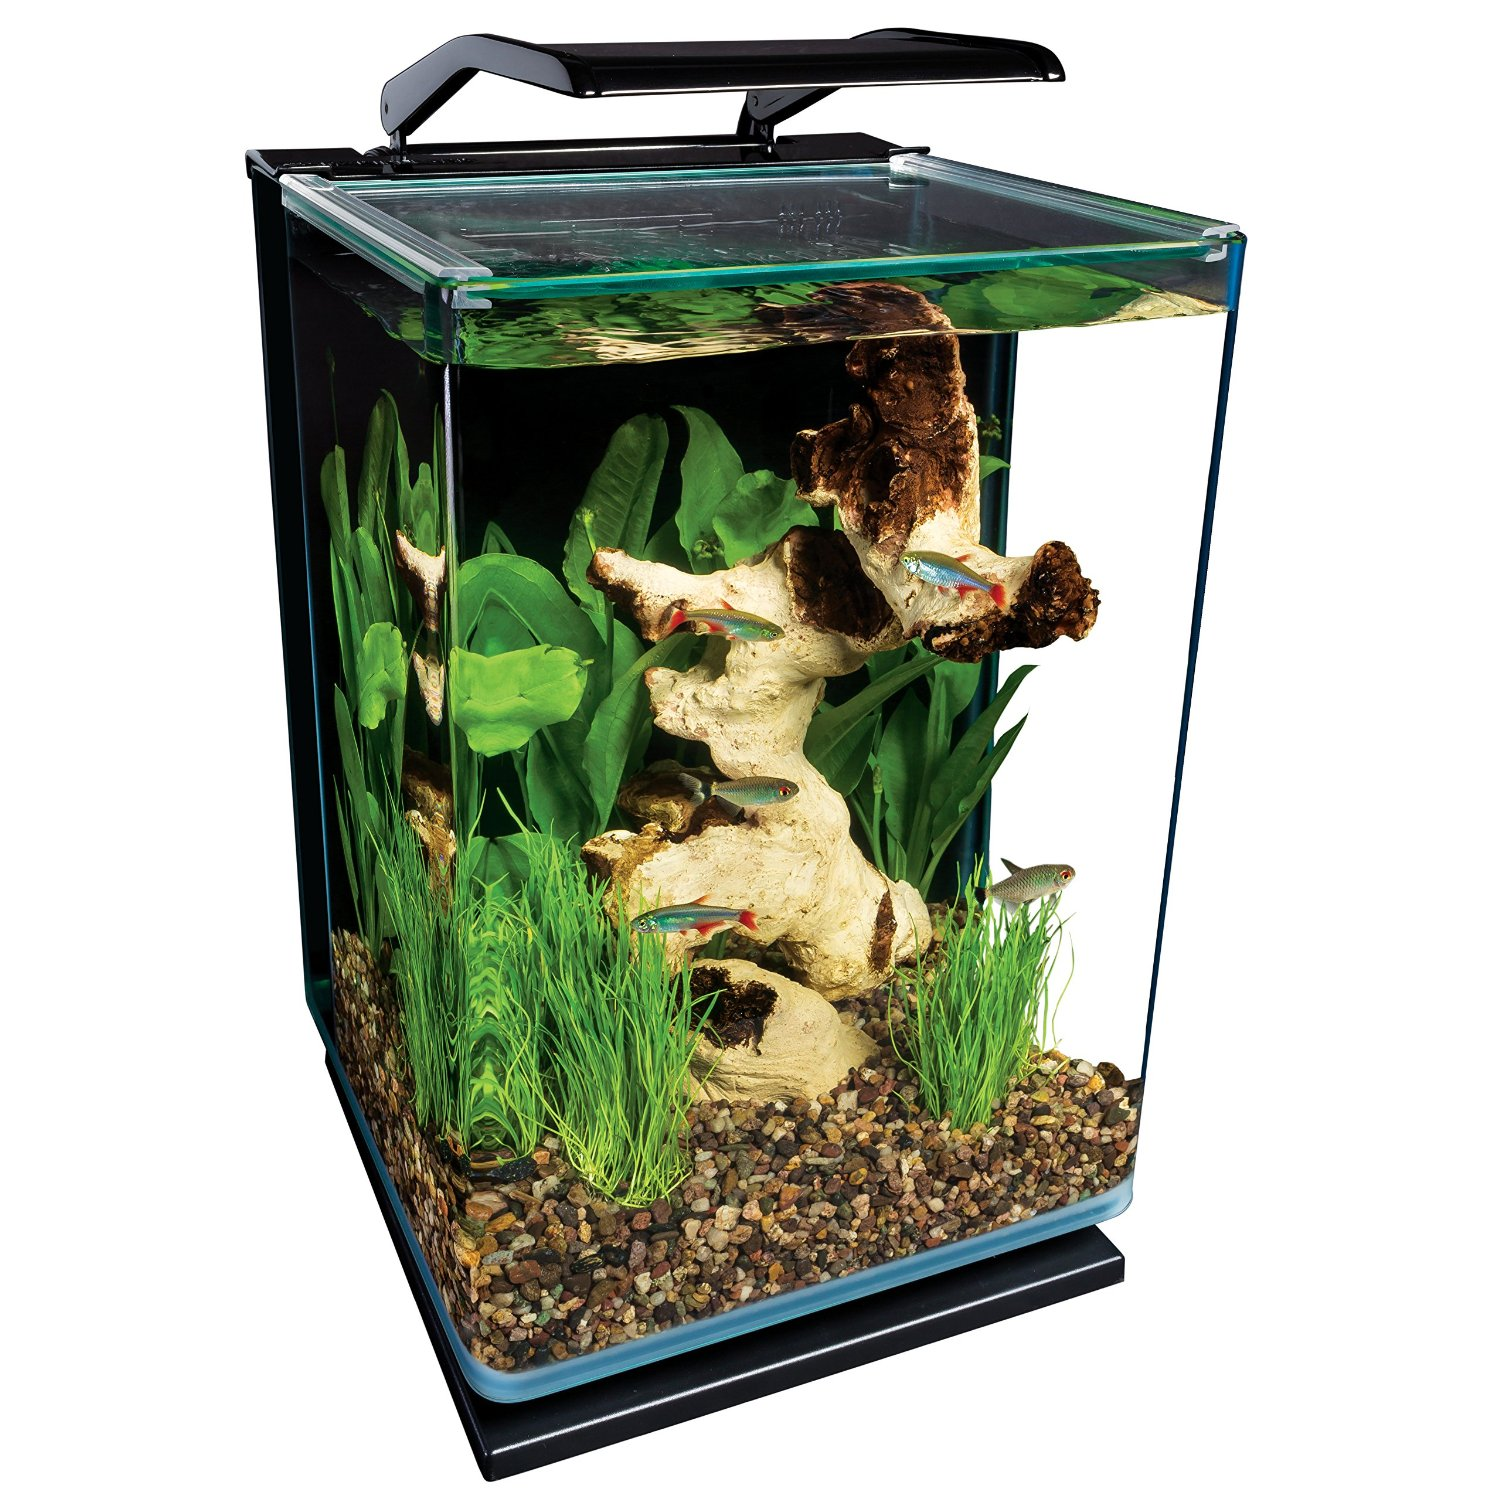 Where to find affordable aquariums online aquarium tidings for Where to buy pet fish